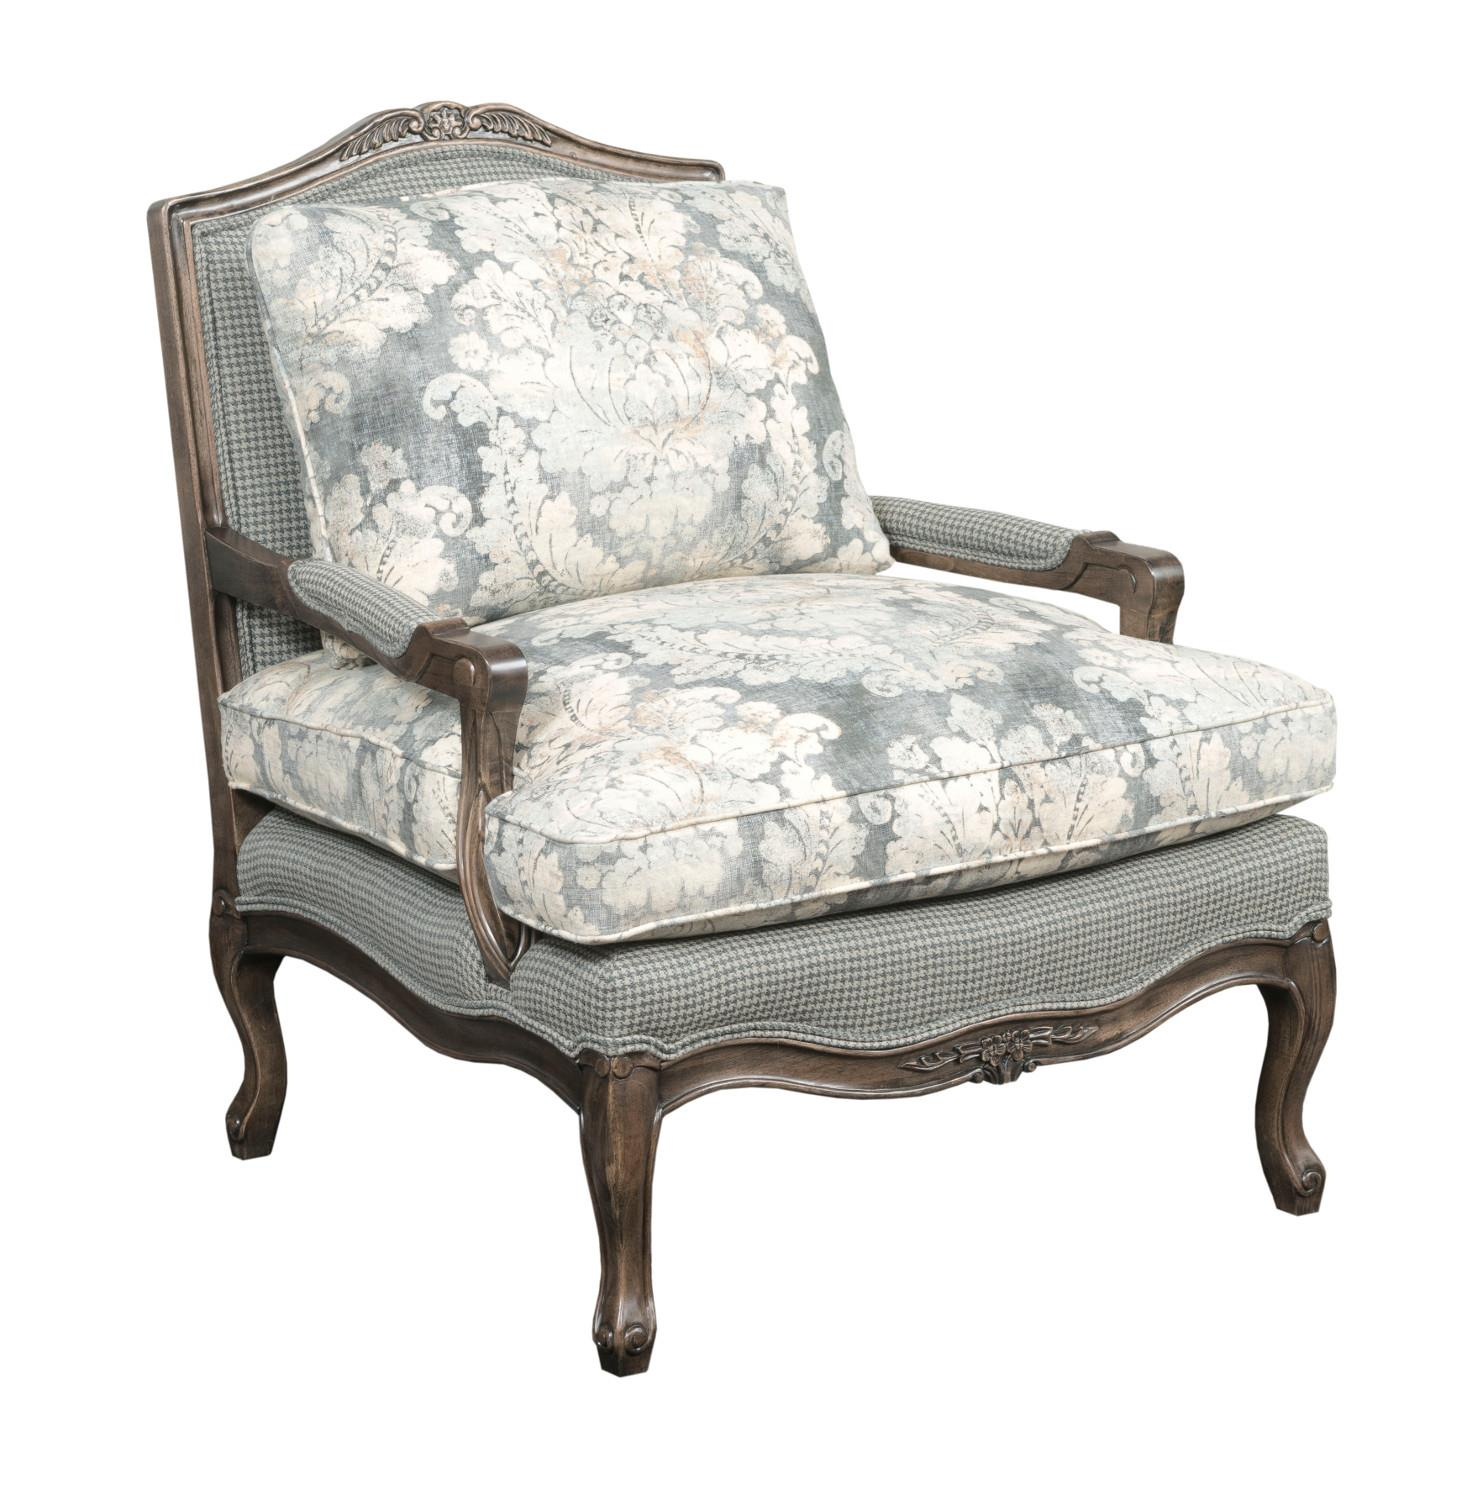 Kincaid Furniture Accent Chairs 044 00 Exposed Wood